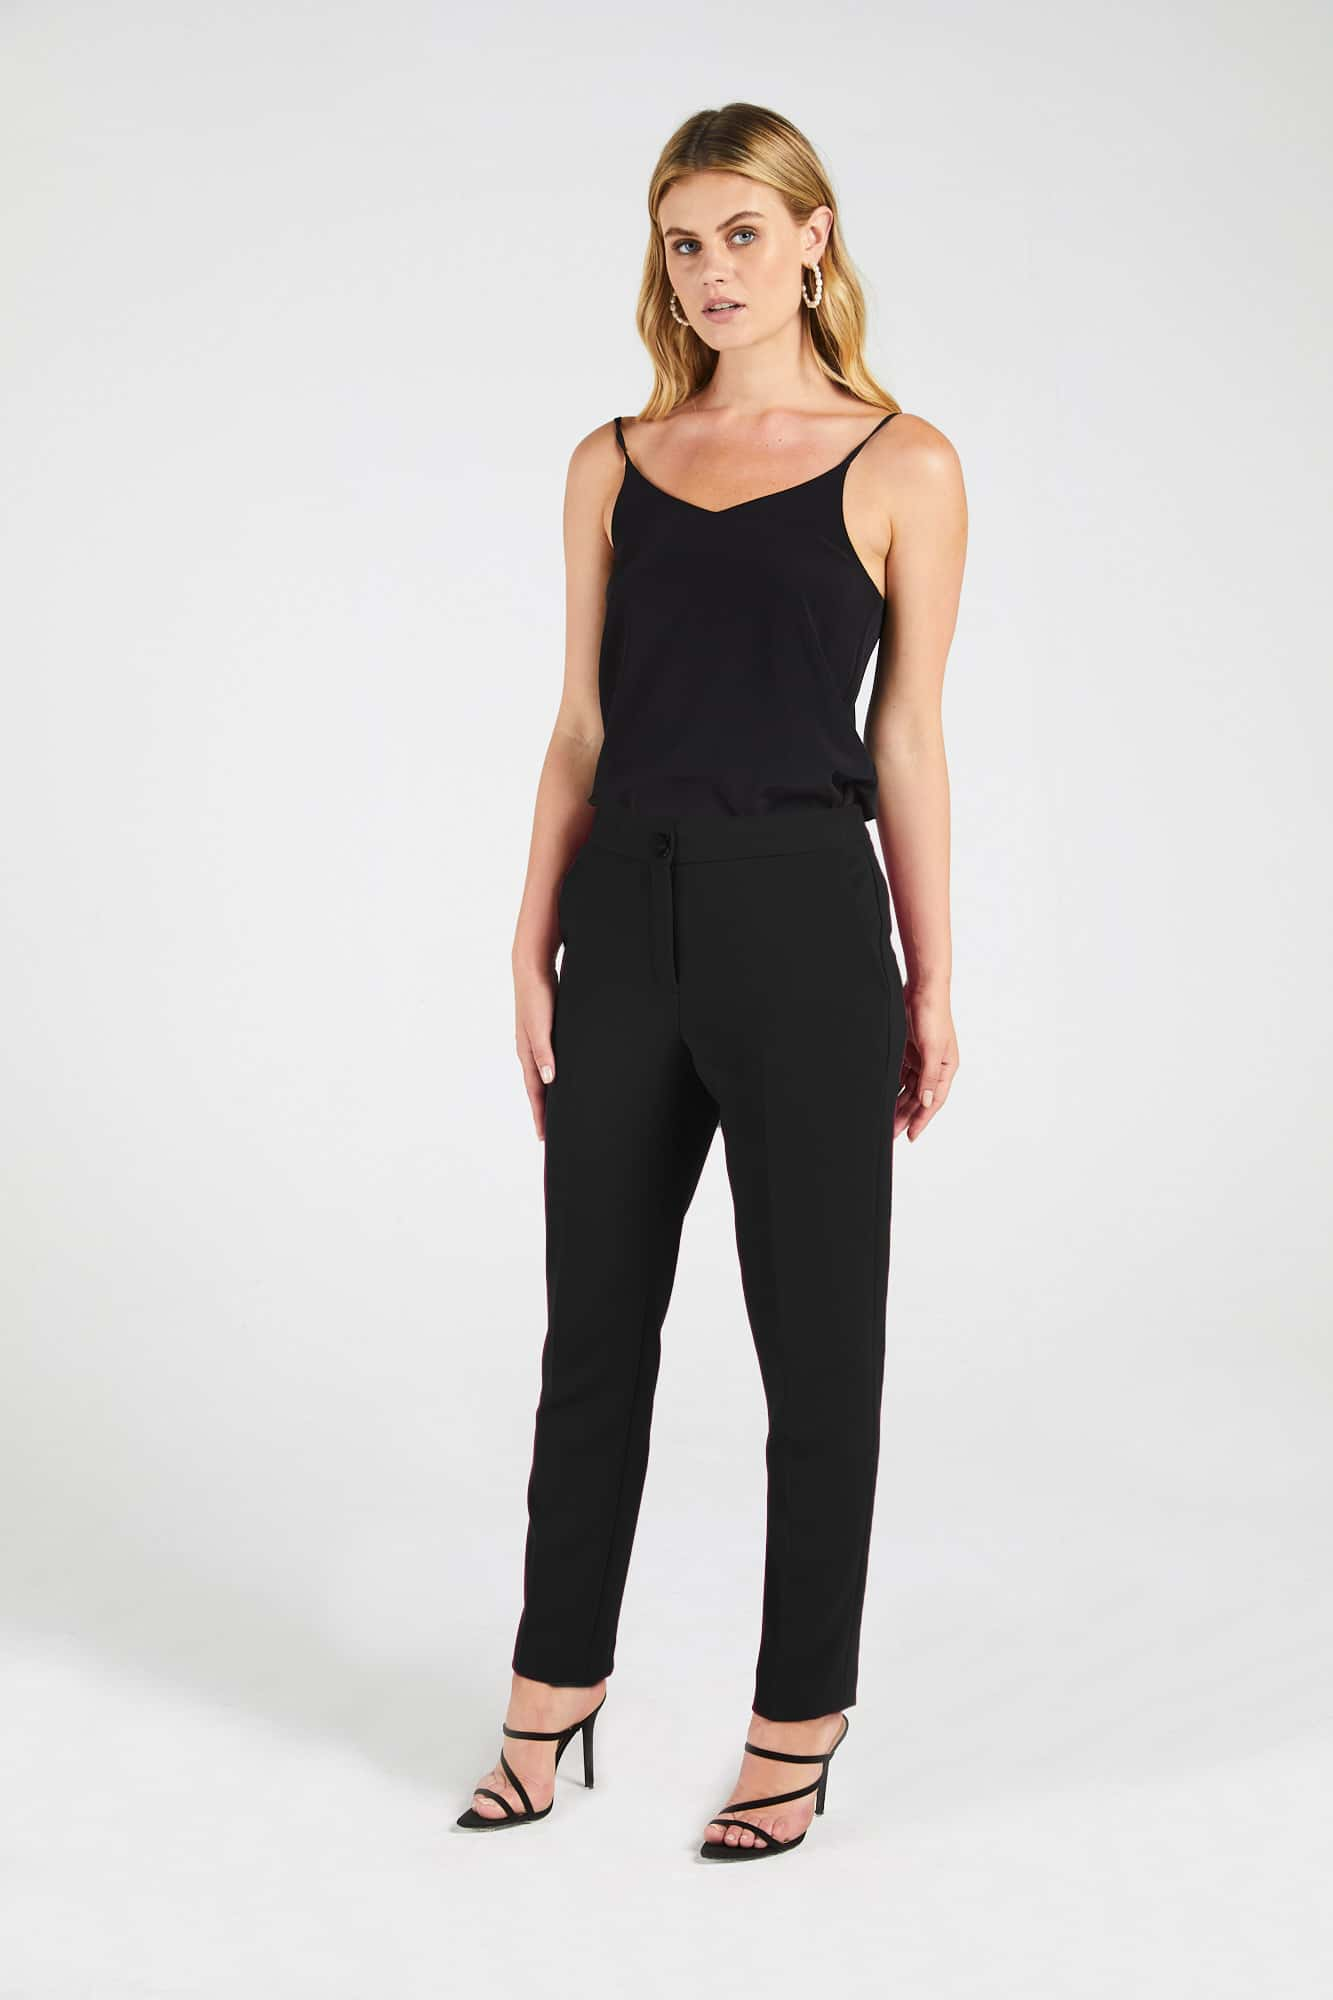 InStitchu Collection The Black Chambers Pants